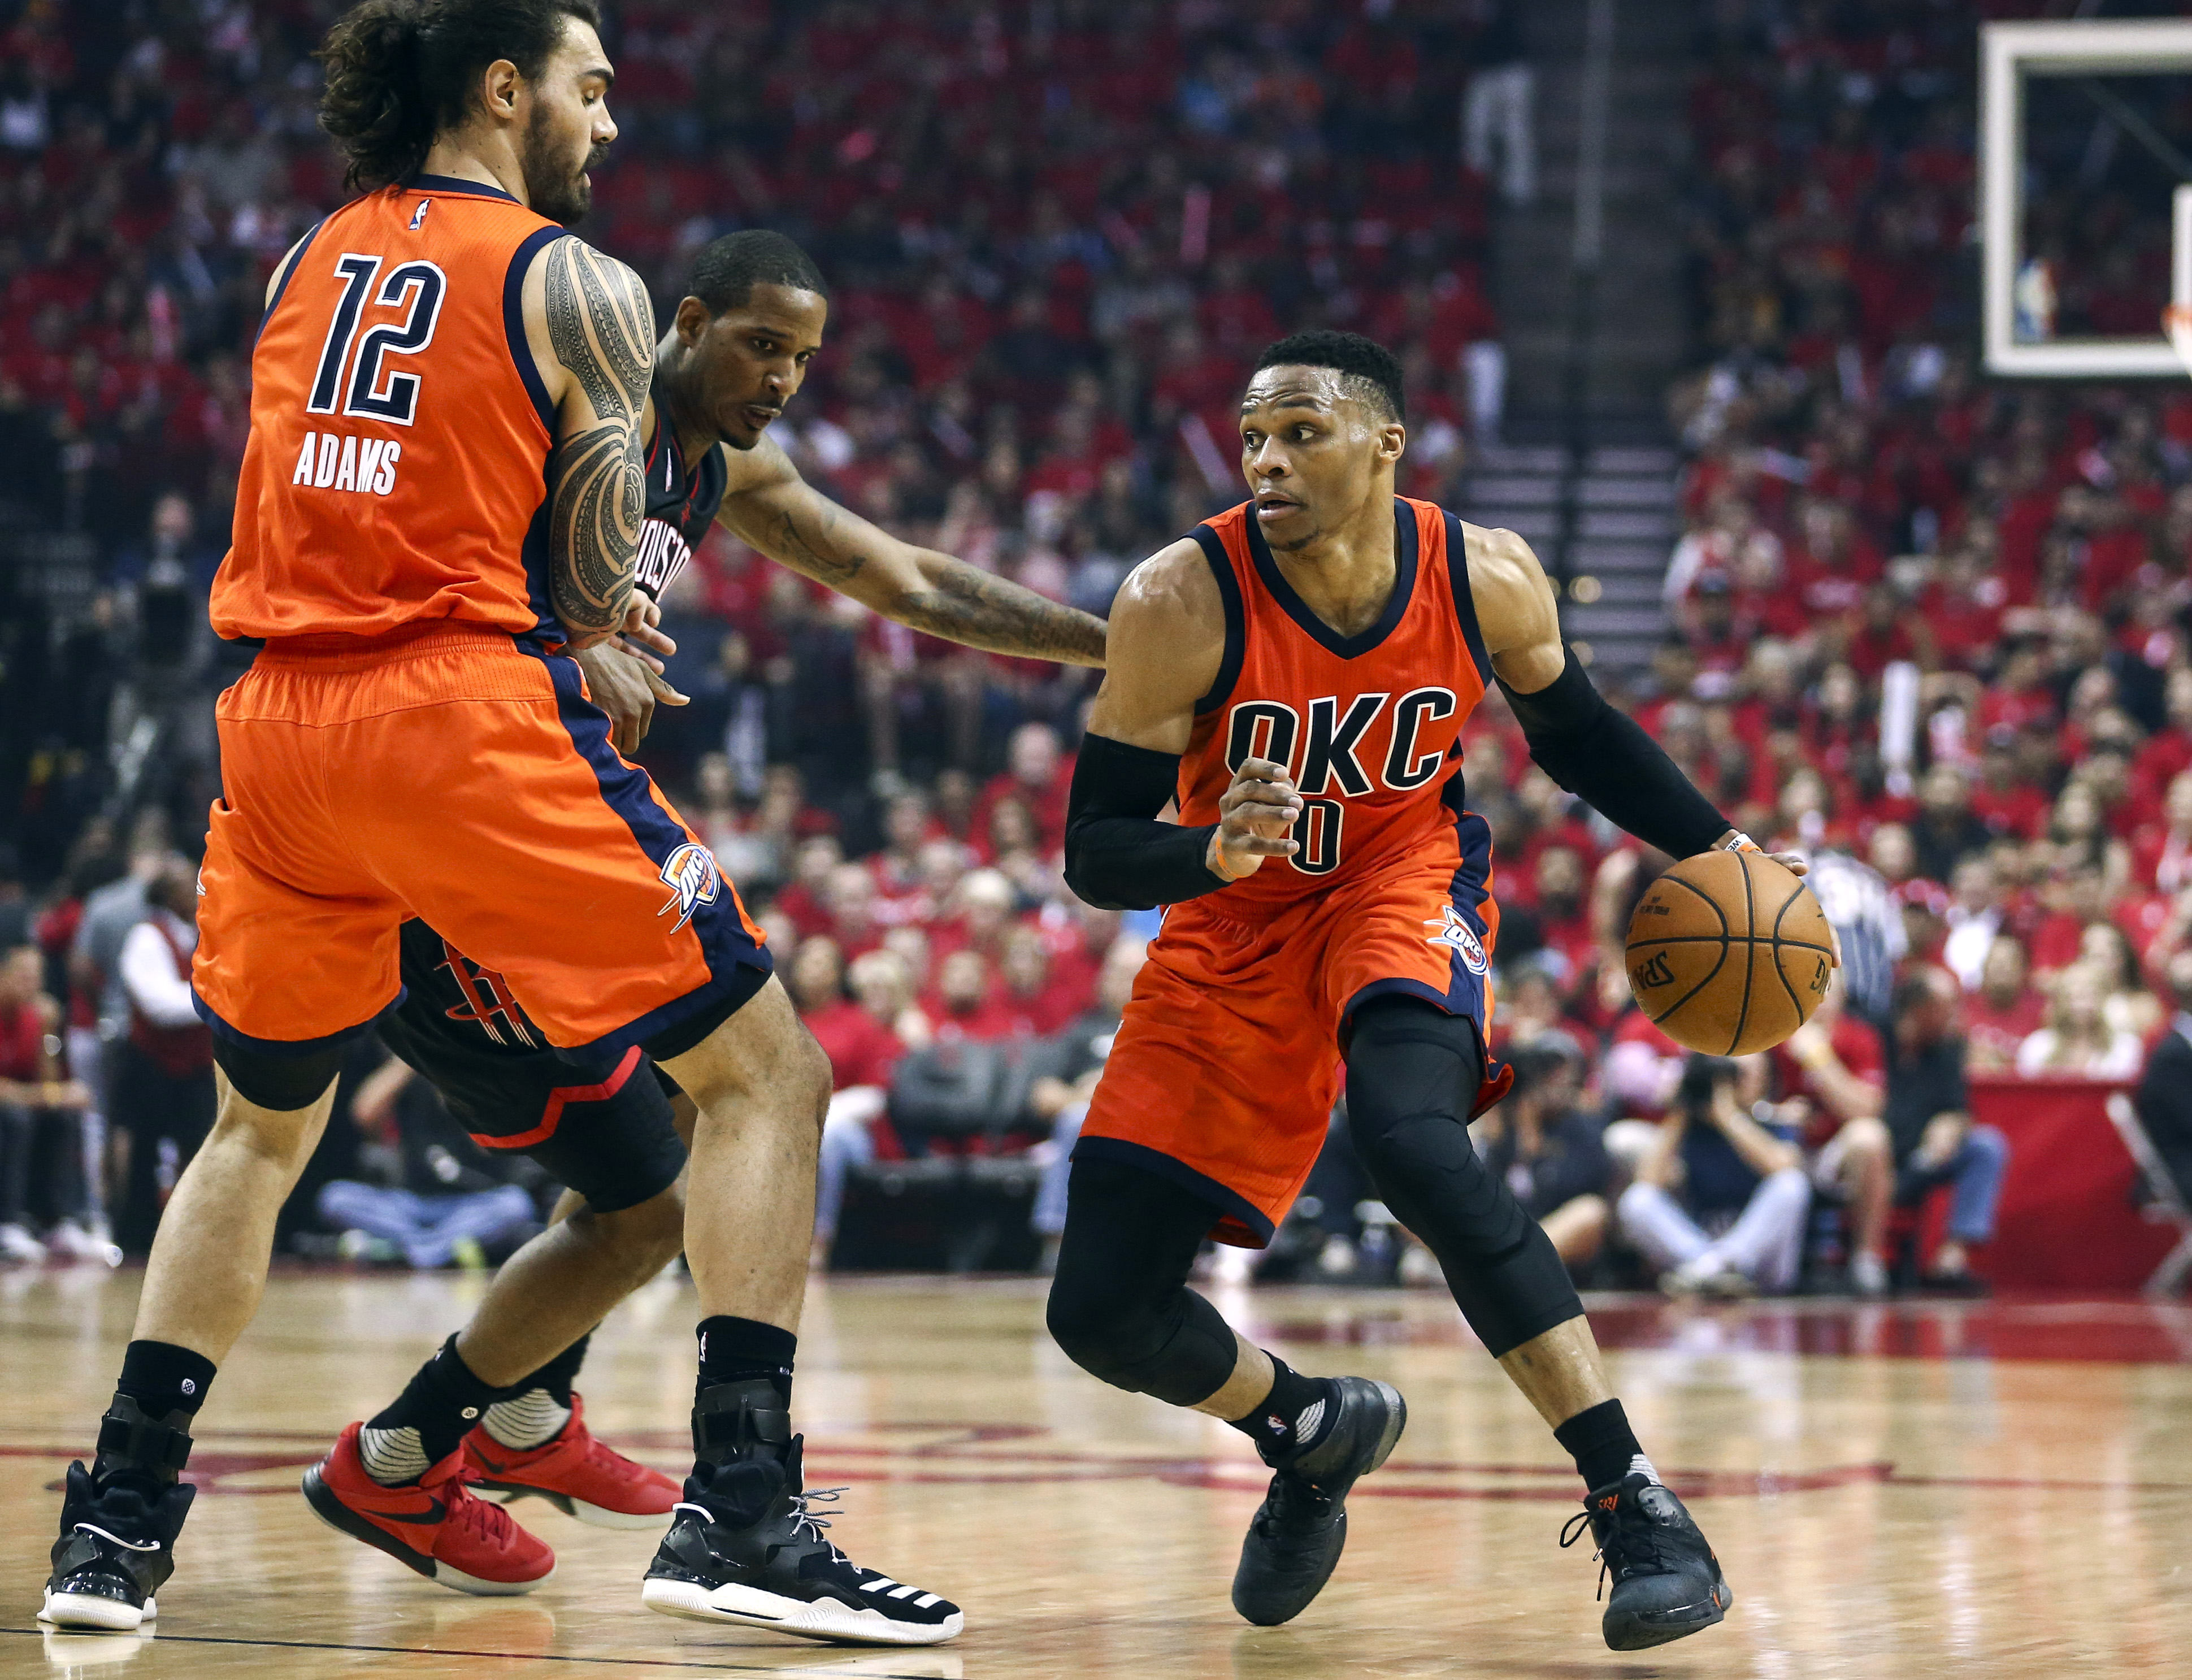 Thunder vs Rockets The Houston Rockets will be eyeing their sixth win in the last seven games when the team hosts the Oklahoma City Thunder on Christmas Day Click